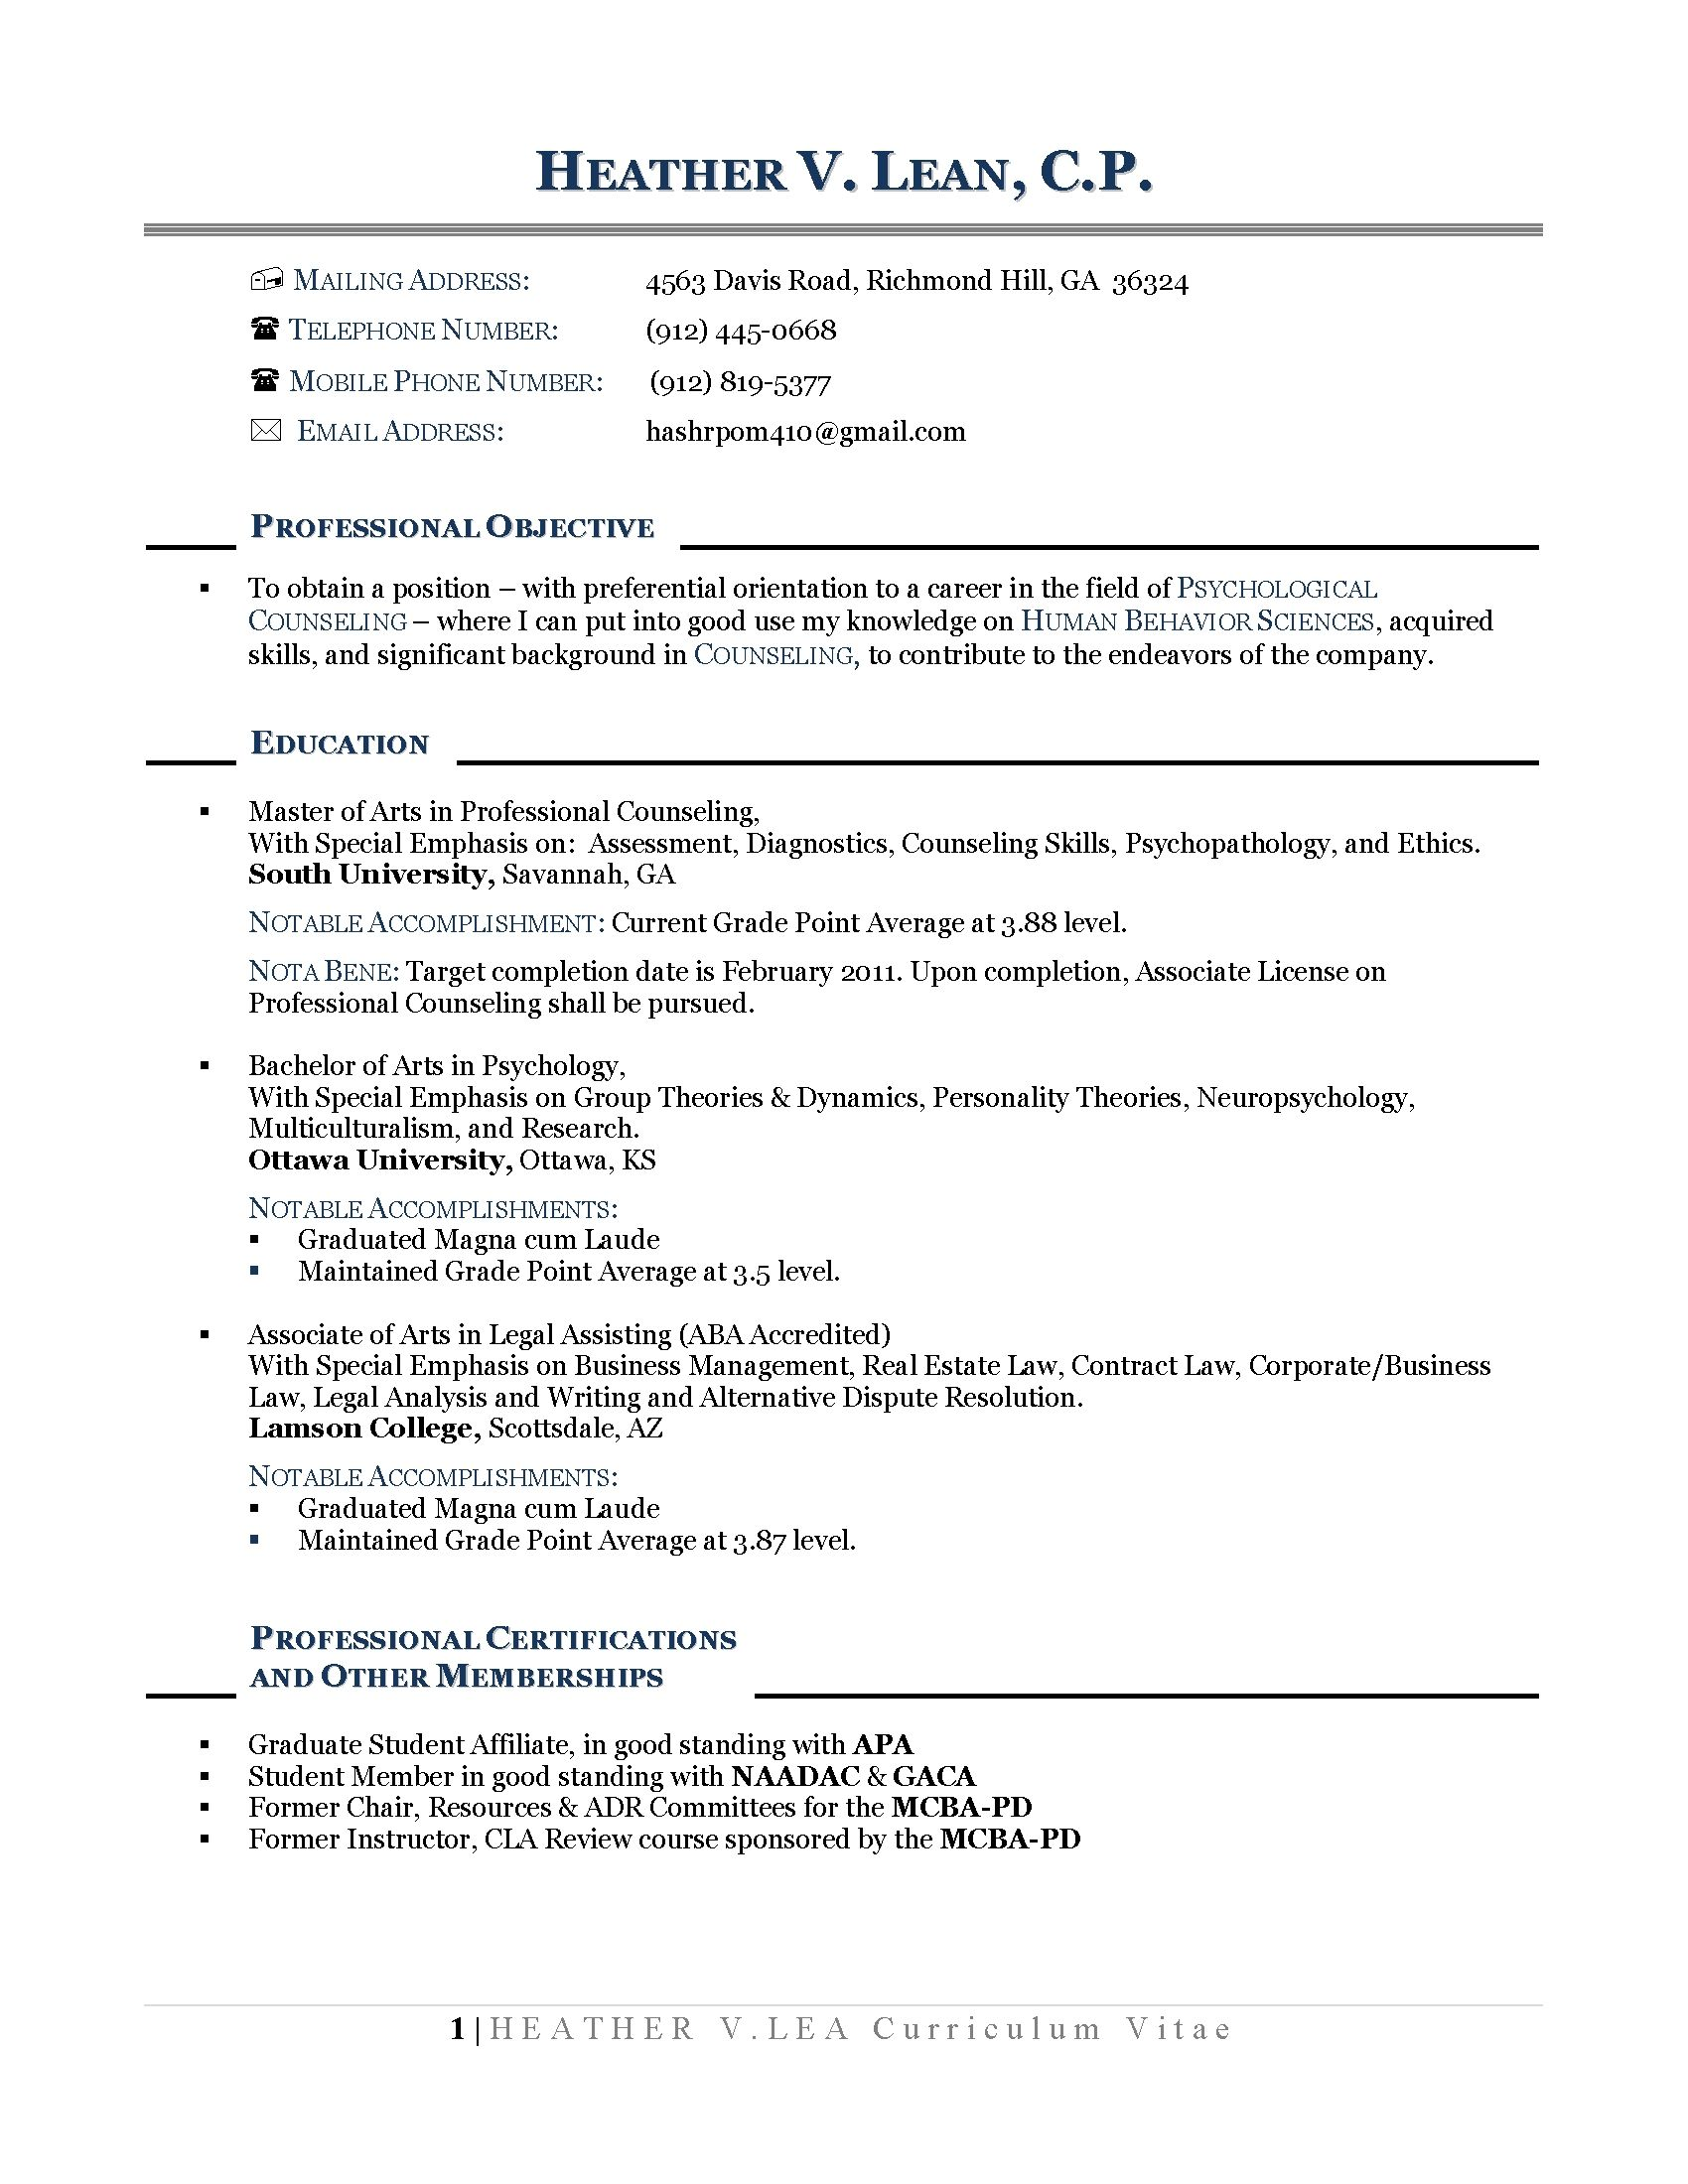 Associate Attorney Resume Unique Resume Examples Career Change  Pinterest  Resume Examples And Change